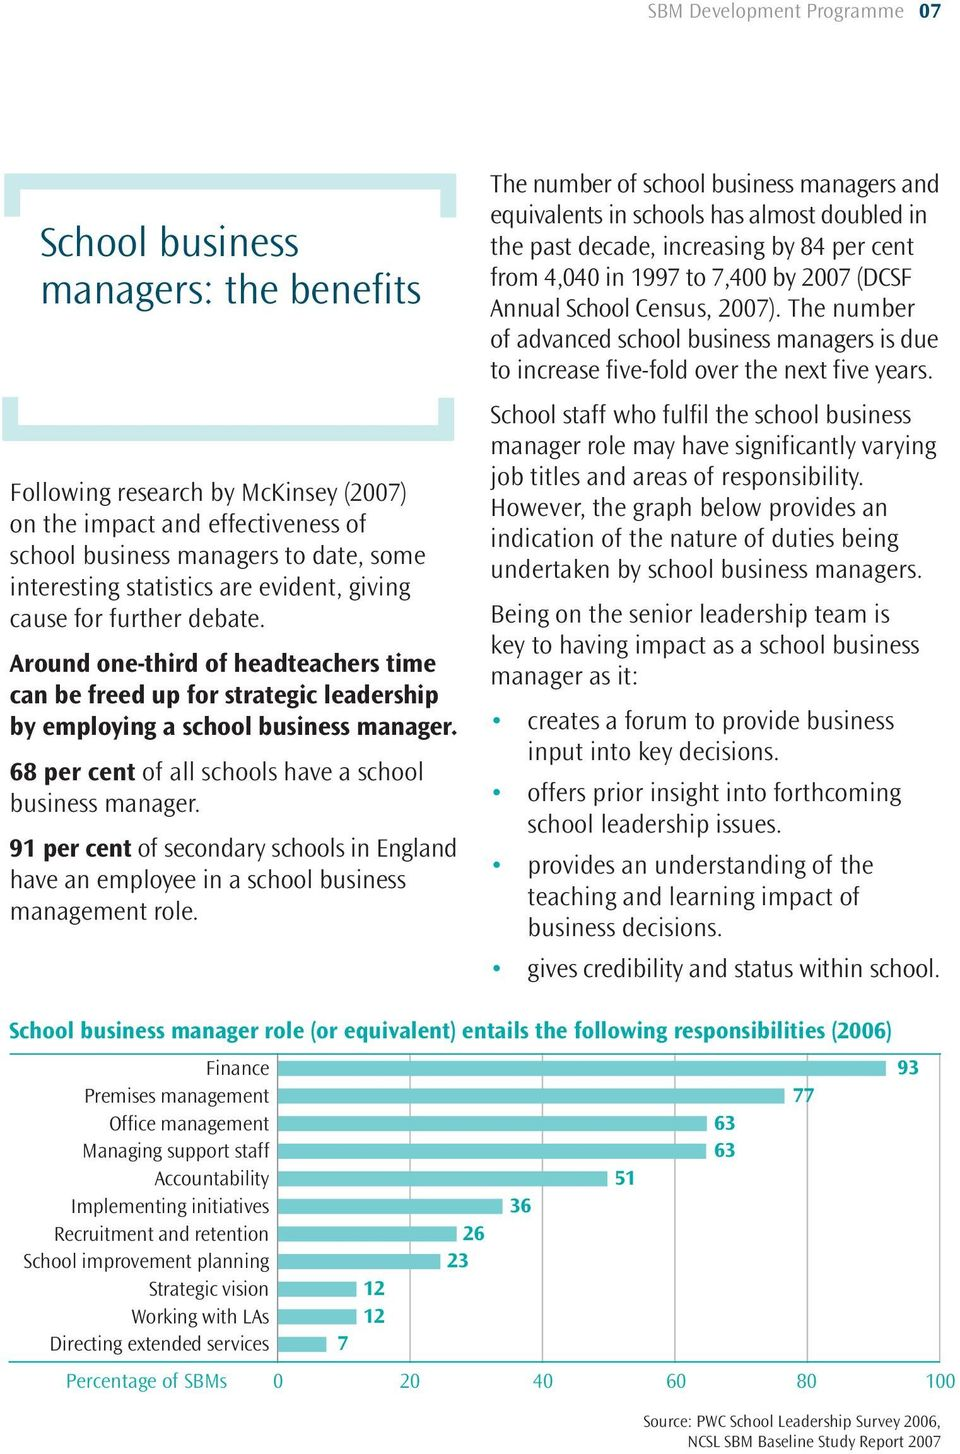 68 per cent of all schools have a school business manager. 91 per cent of secondary schools in England have an employee in a school business management role.